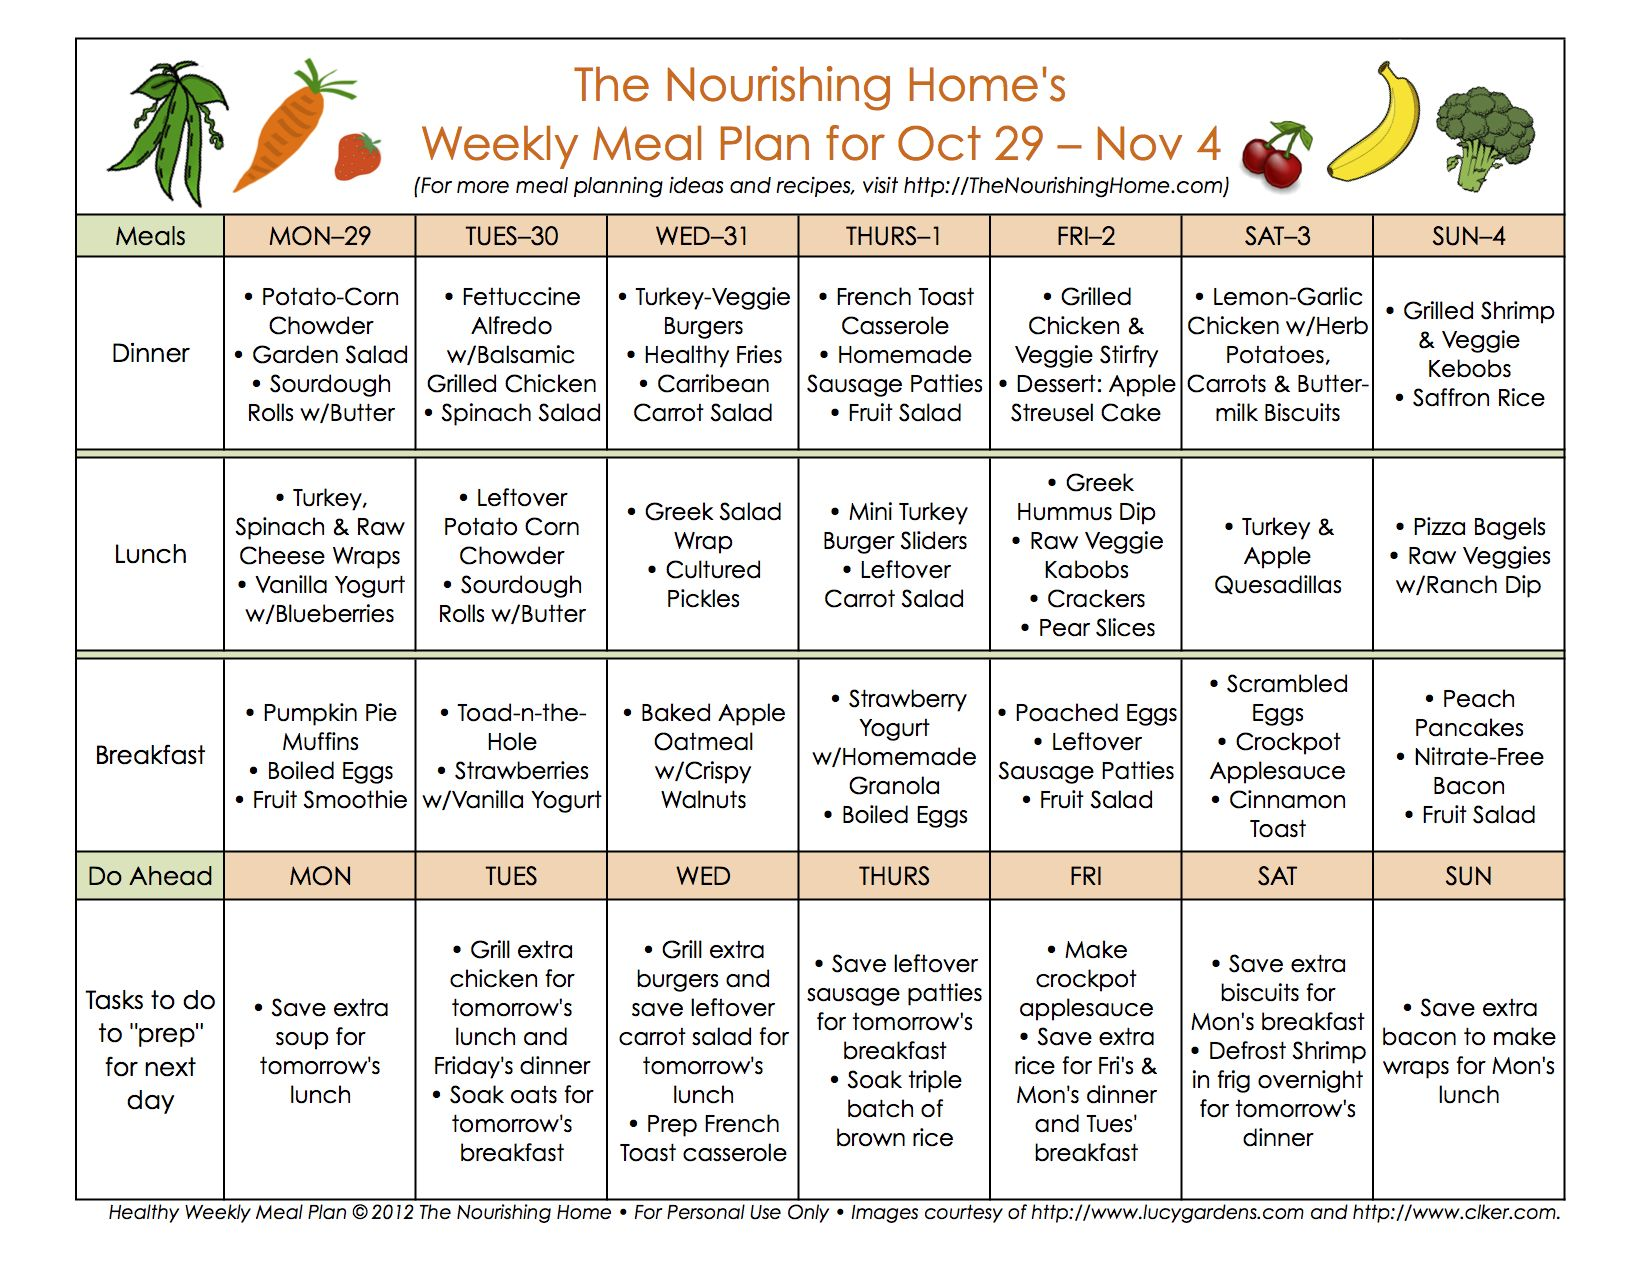 17 Best images about Mastering Meal Planning on Pinterest | Weekly ...